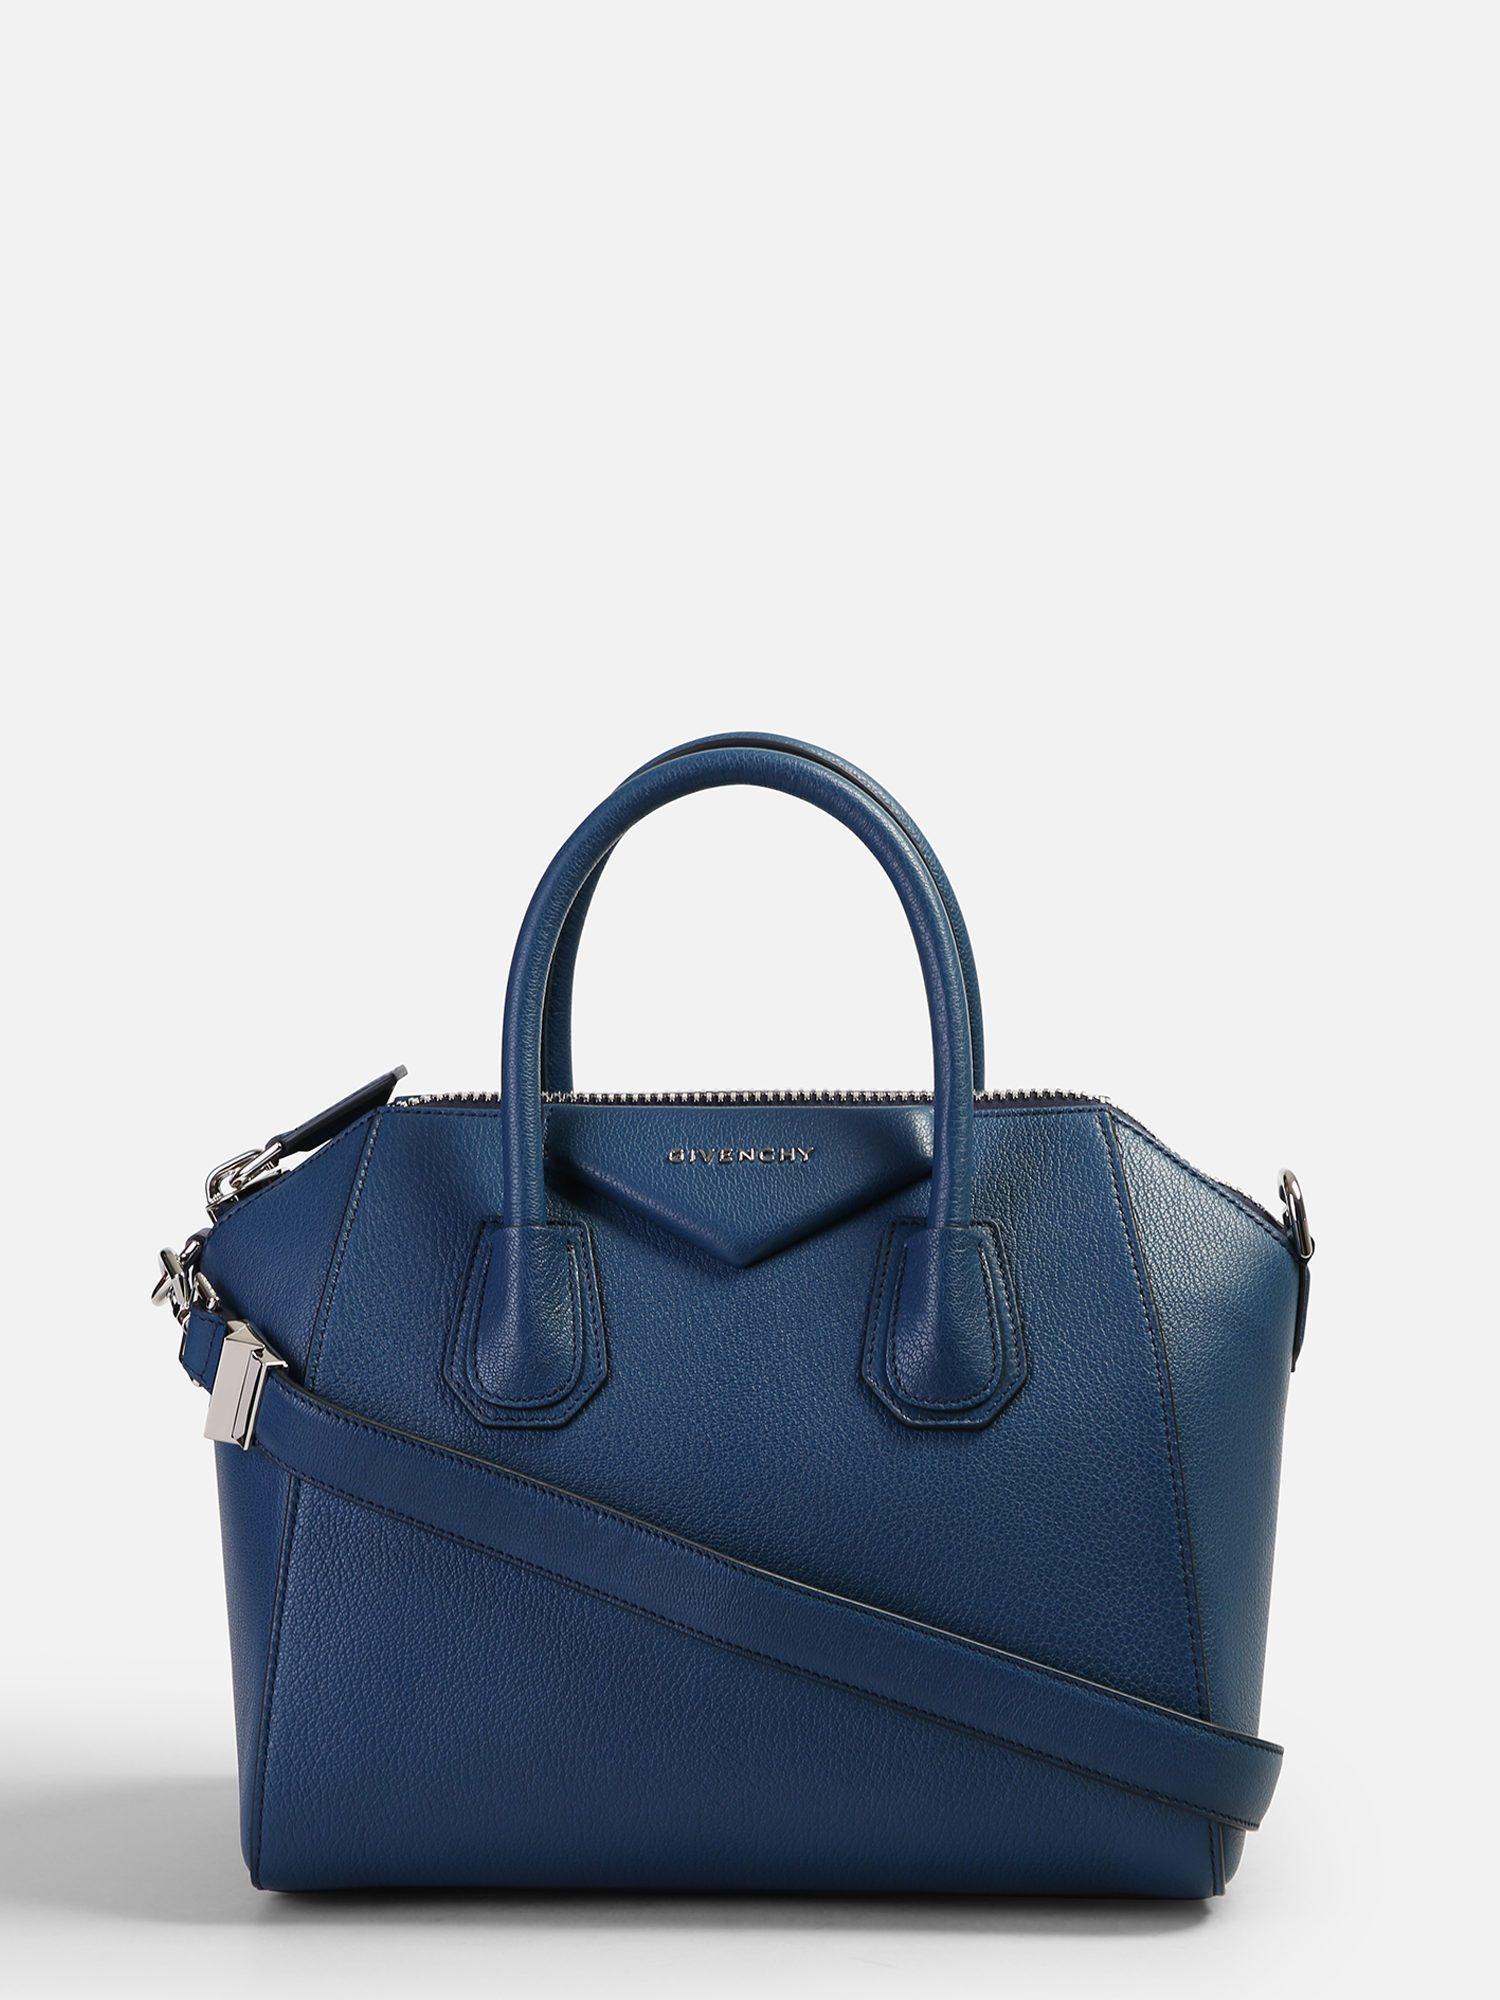 ccceabe437ee Lyst - Givenchy Small Antigona Leather Bag in Blue